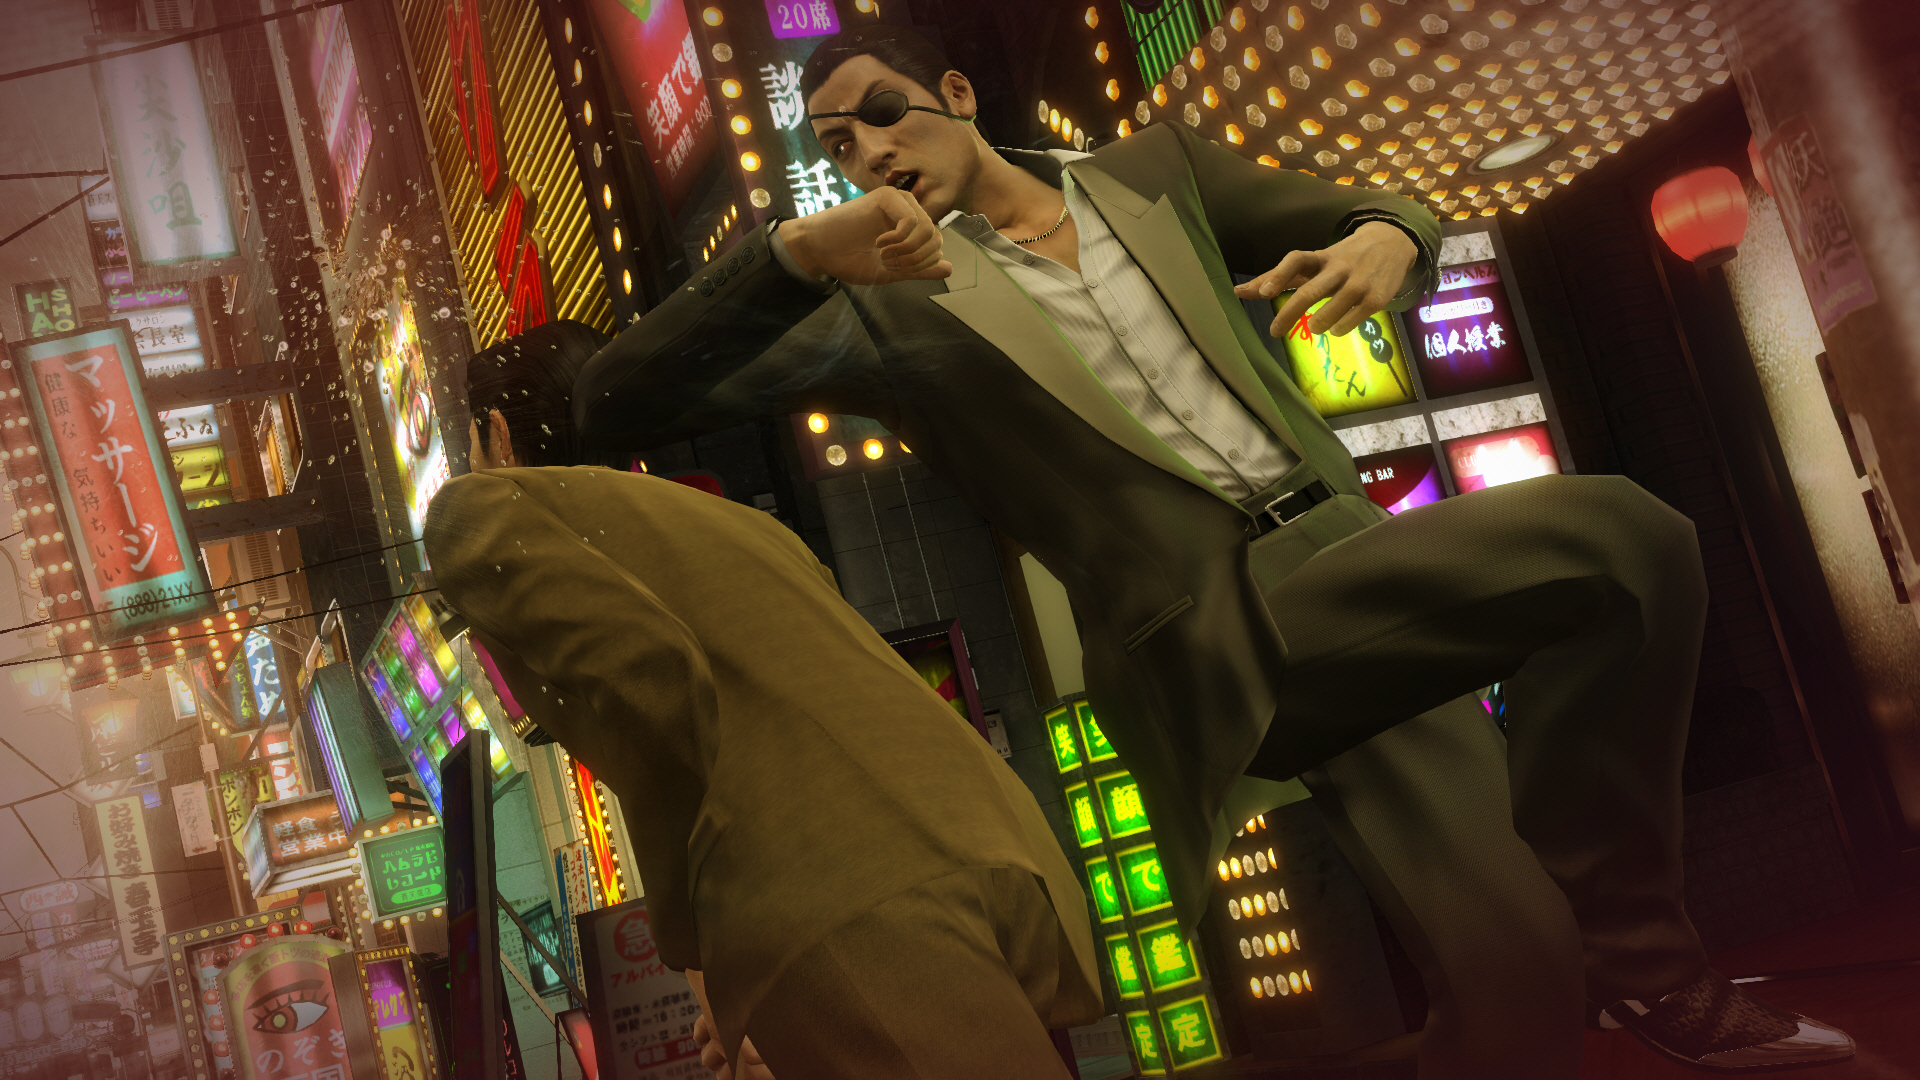 Yakuza Slot - Read our Review of this Fugaso Casino Game